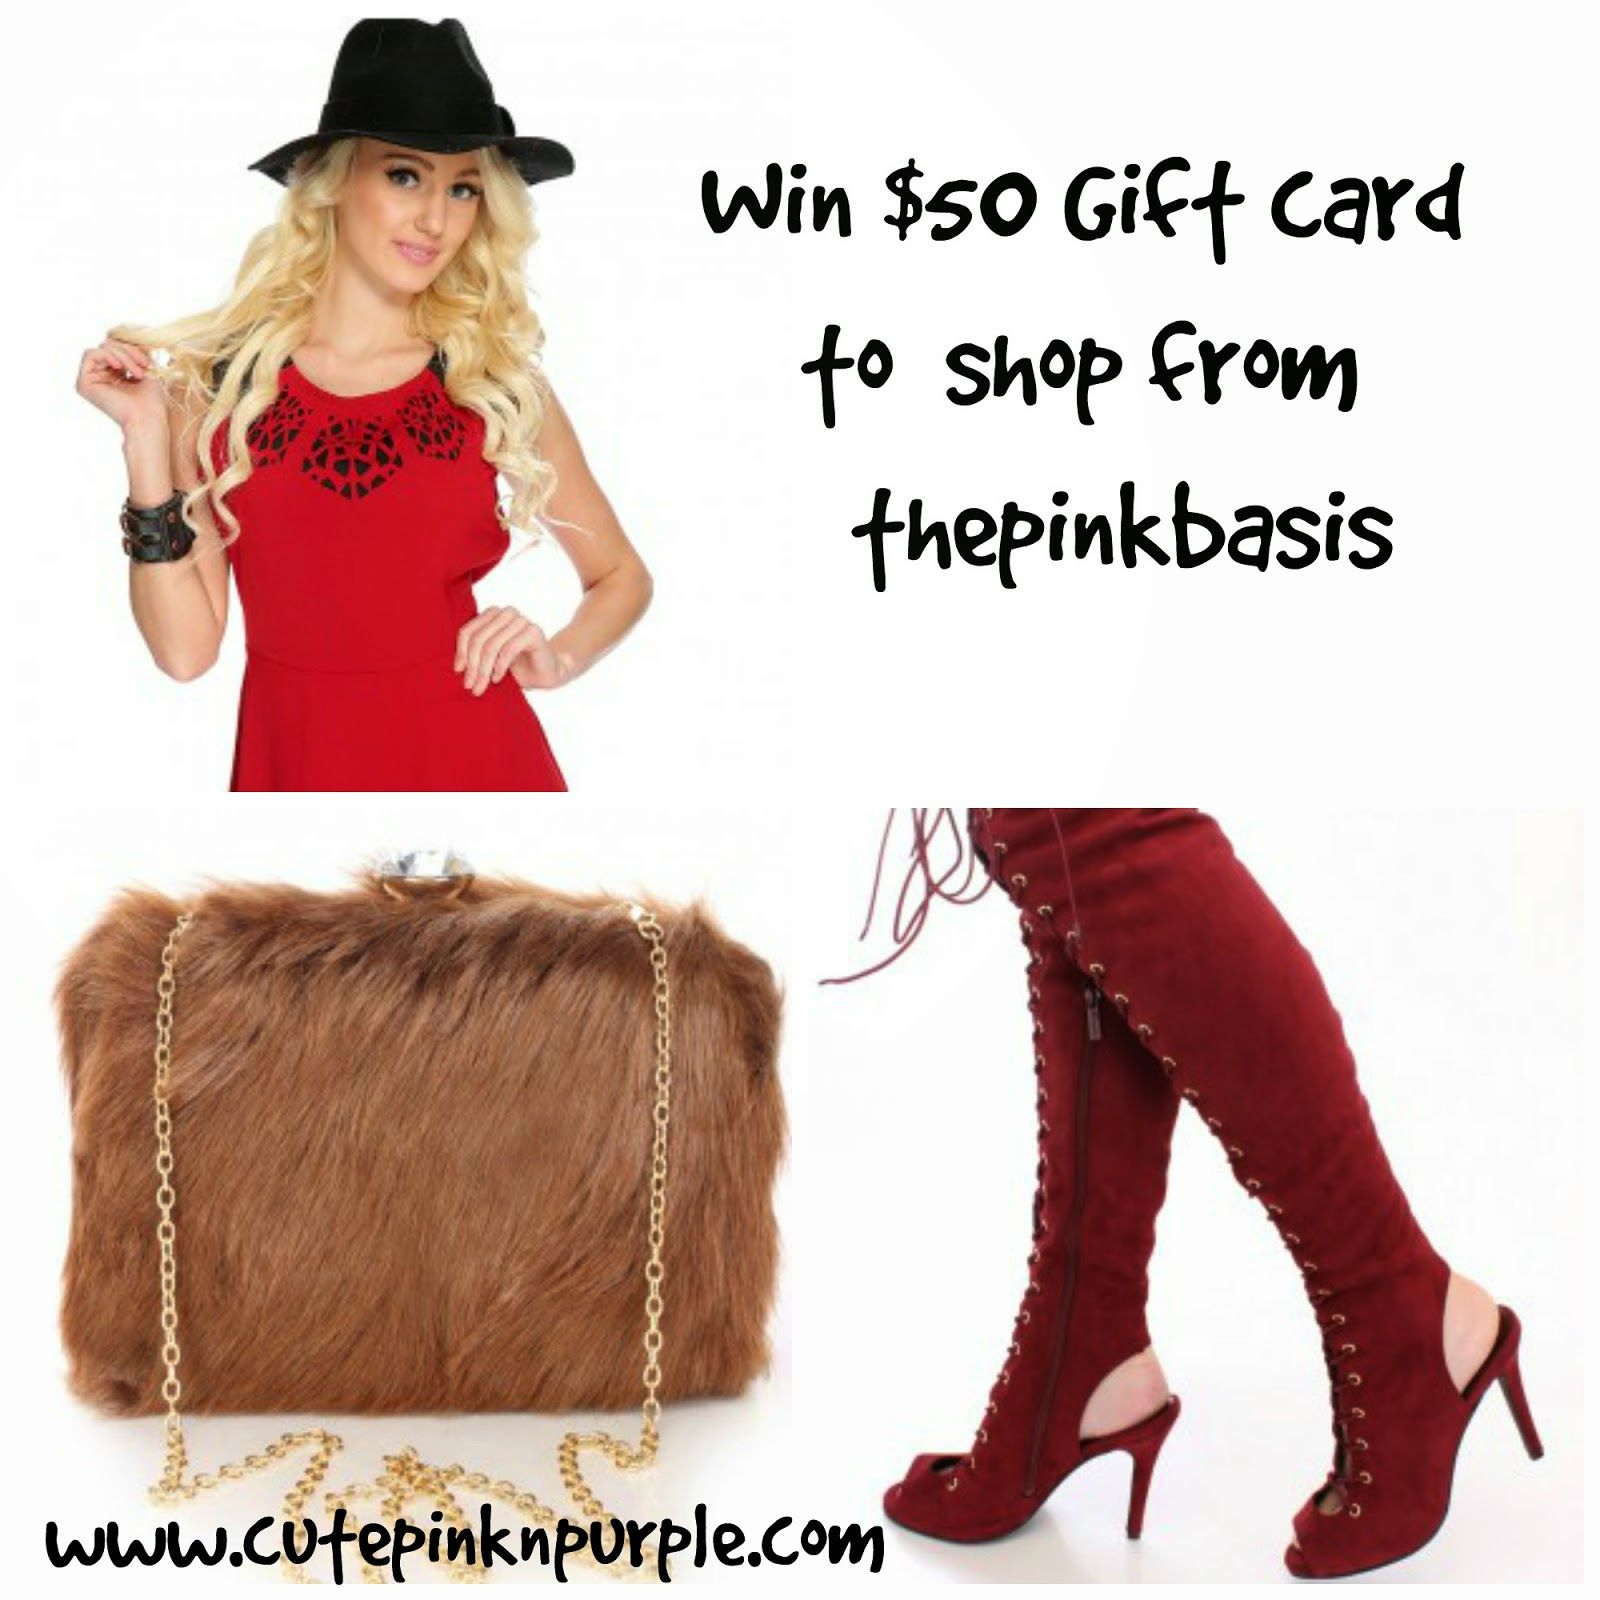 You can #WIN a $50 gift card to Pink Basis! Enter here: http://bit.ly/1JK7D3C #Fashion